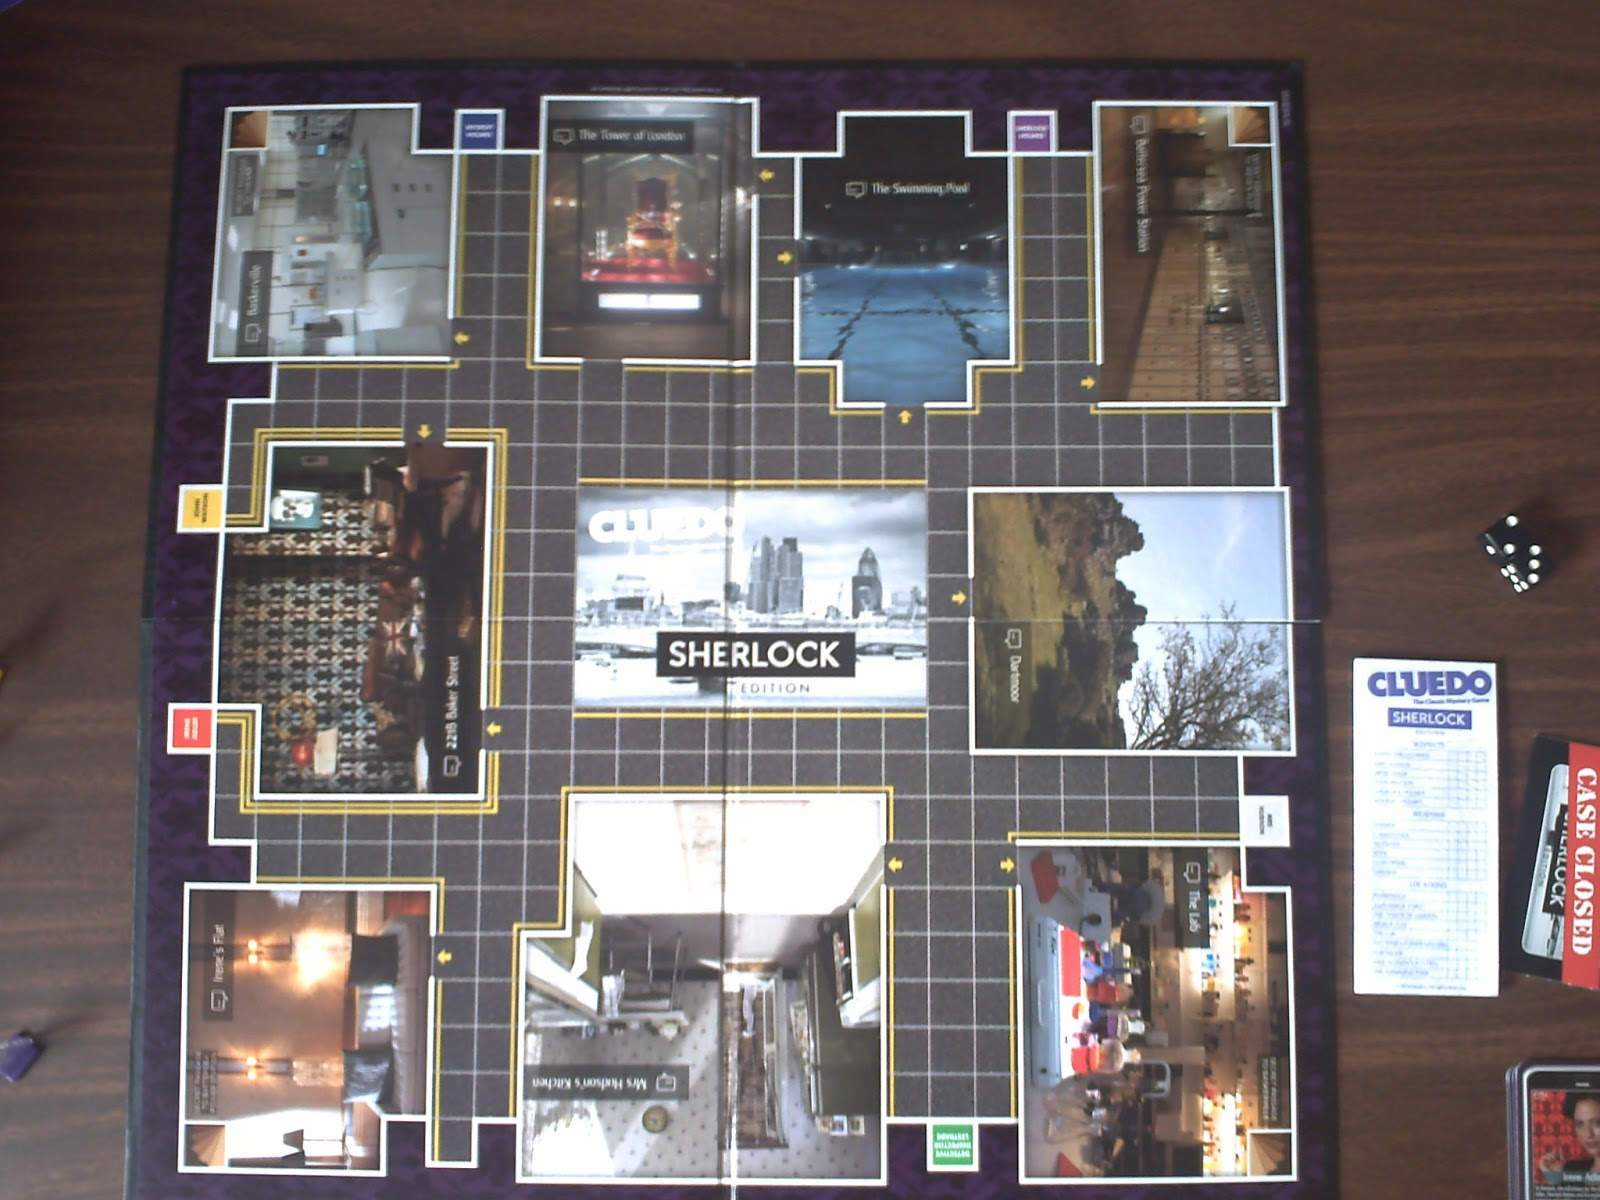 Review Cluedo Sherlock Edition The Disgruntled Individual